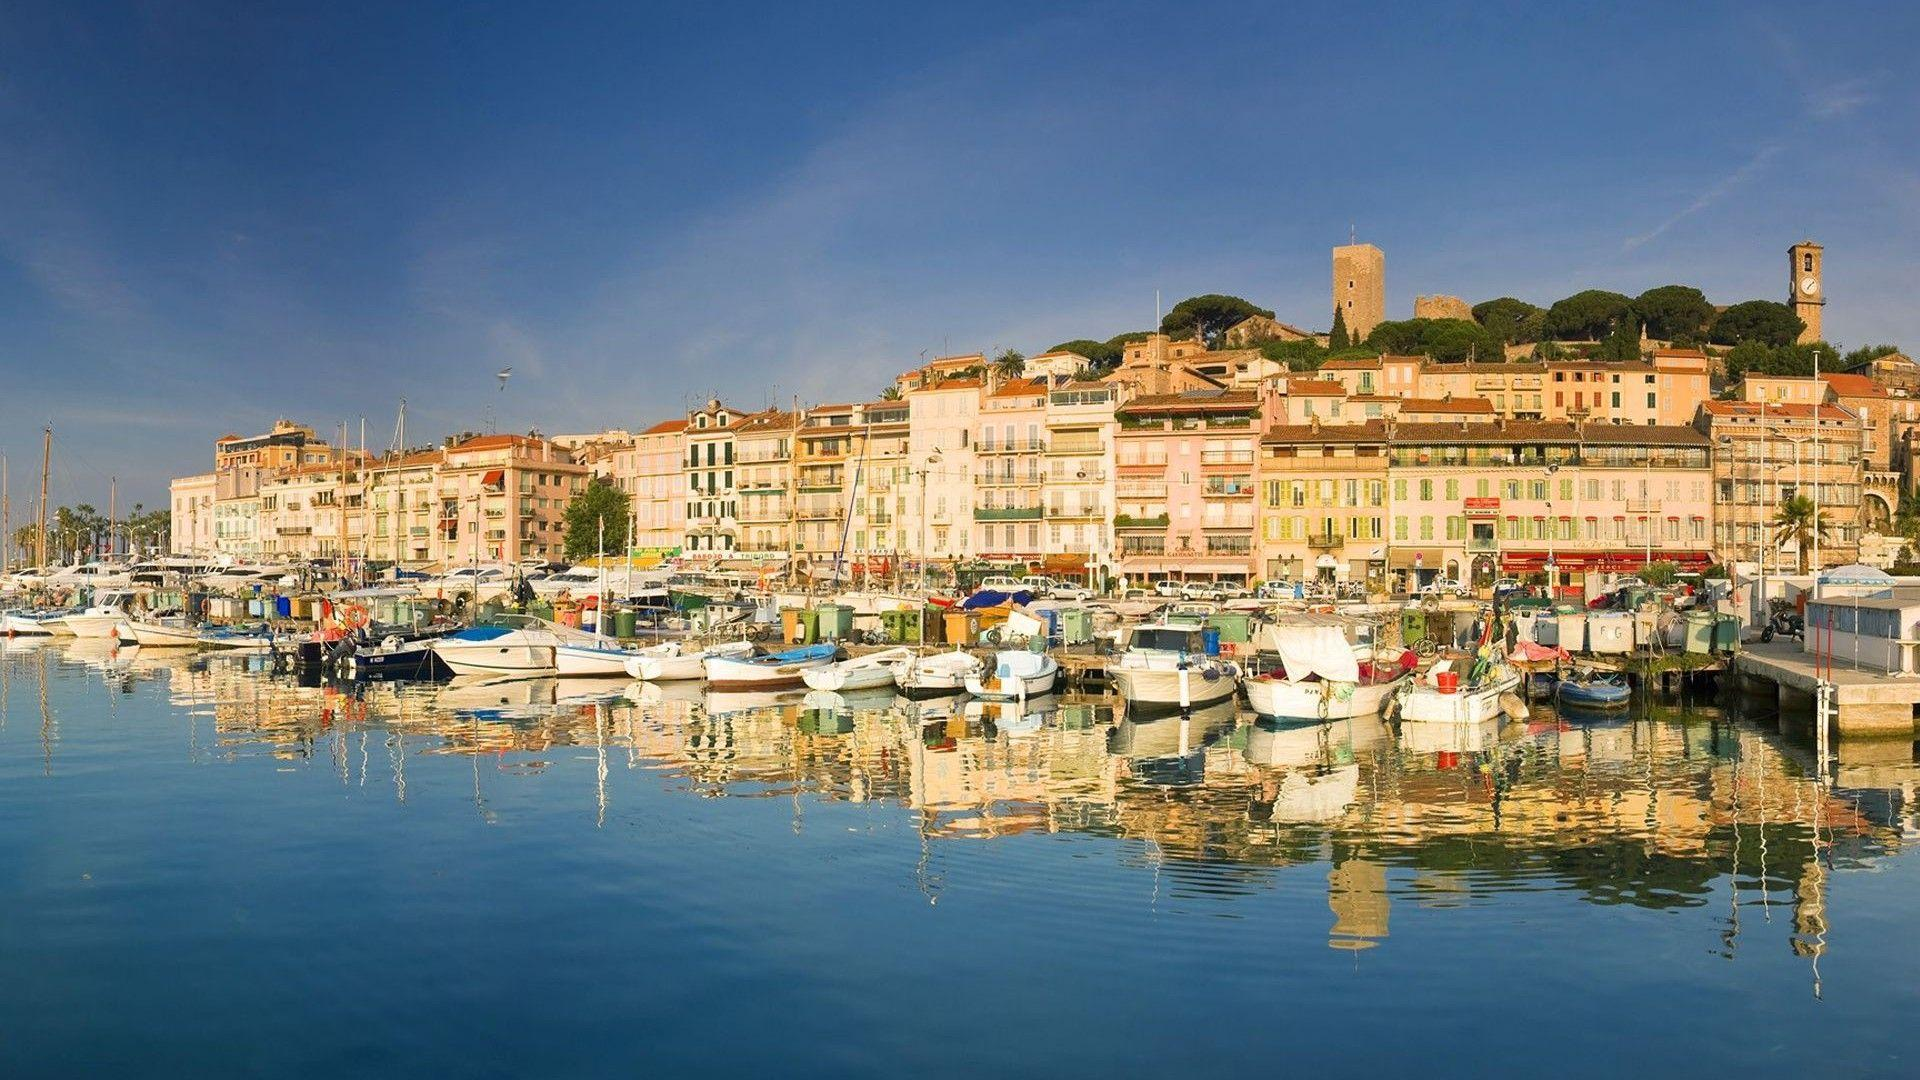 Yachts at coast in Cannes, France wallpapers and image